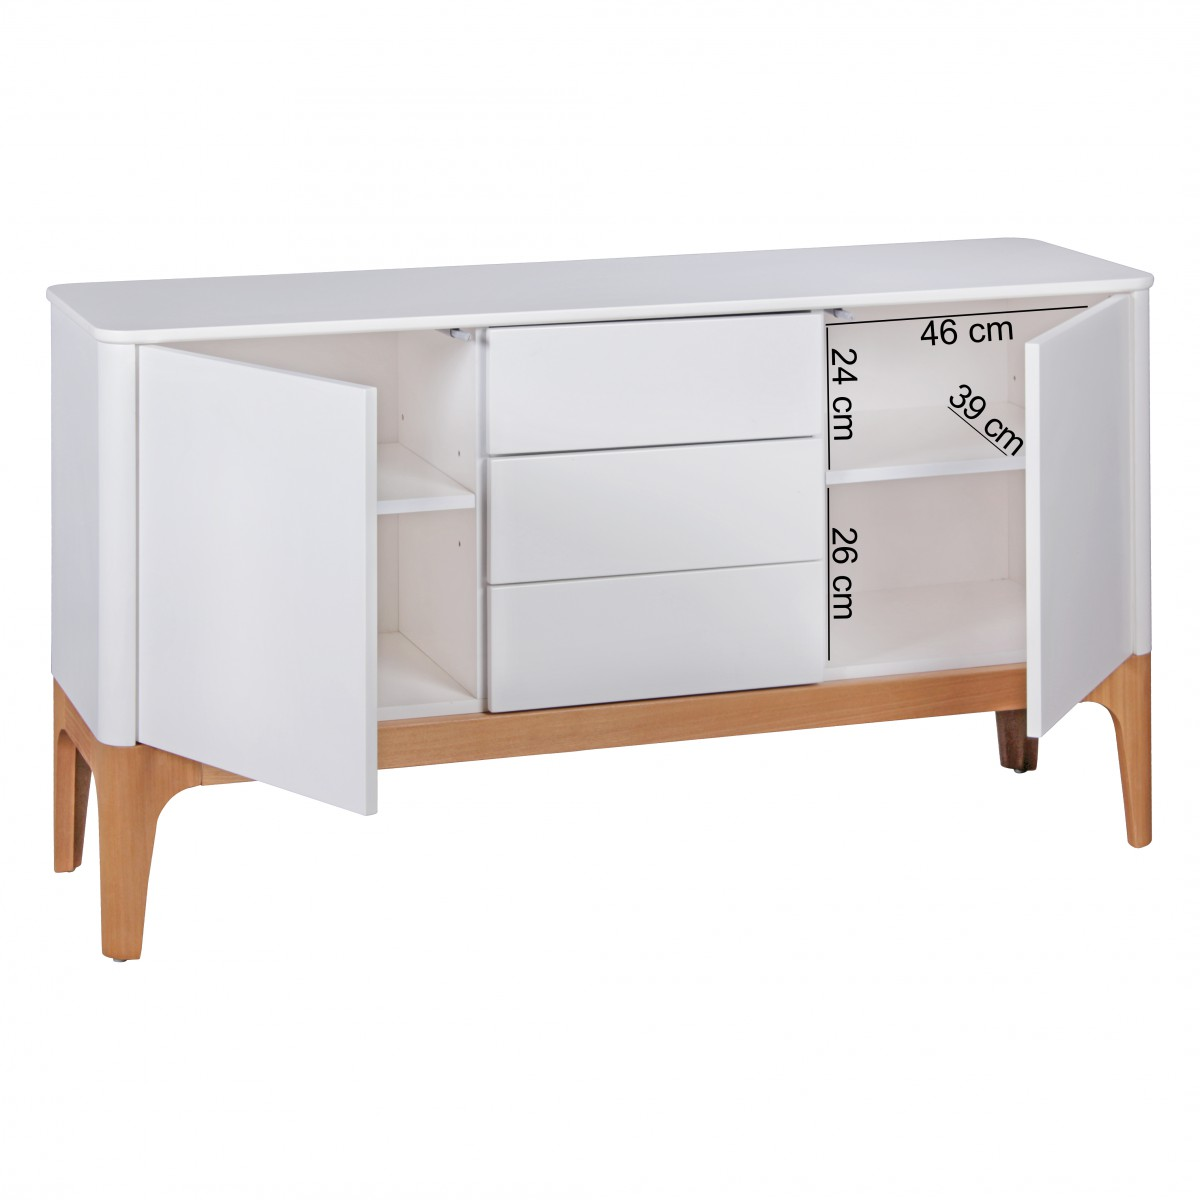 kommode diele sideboard 150 cm mdf retro anrichte schubladen flur skandinavisch ebay. Black Bedroom Furniture Sets. Home Design Ideas